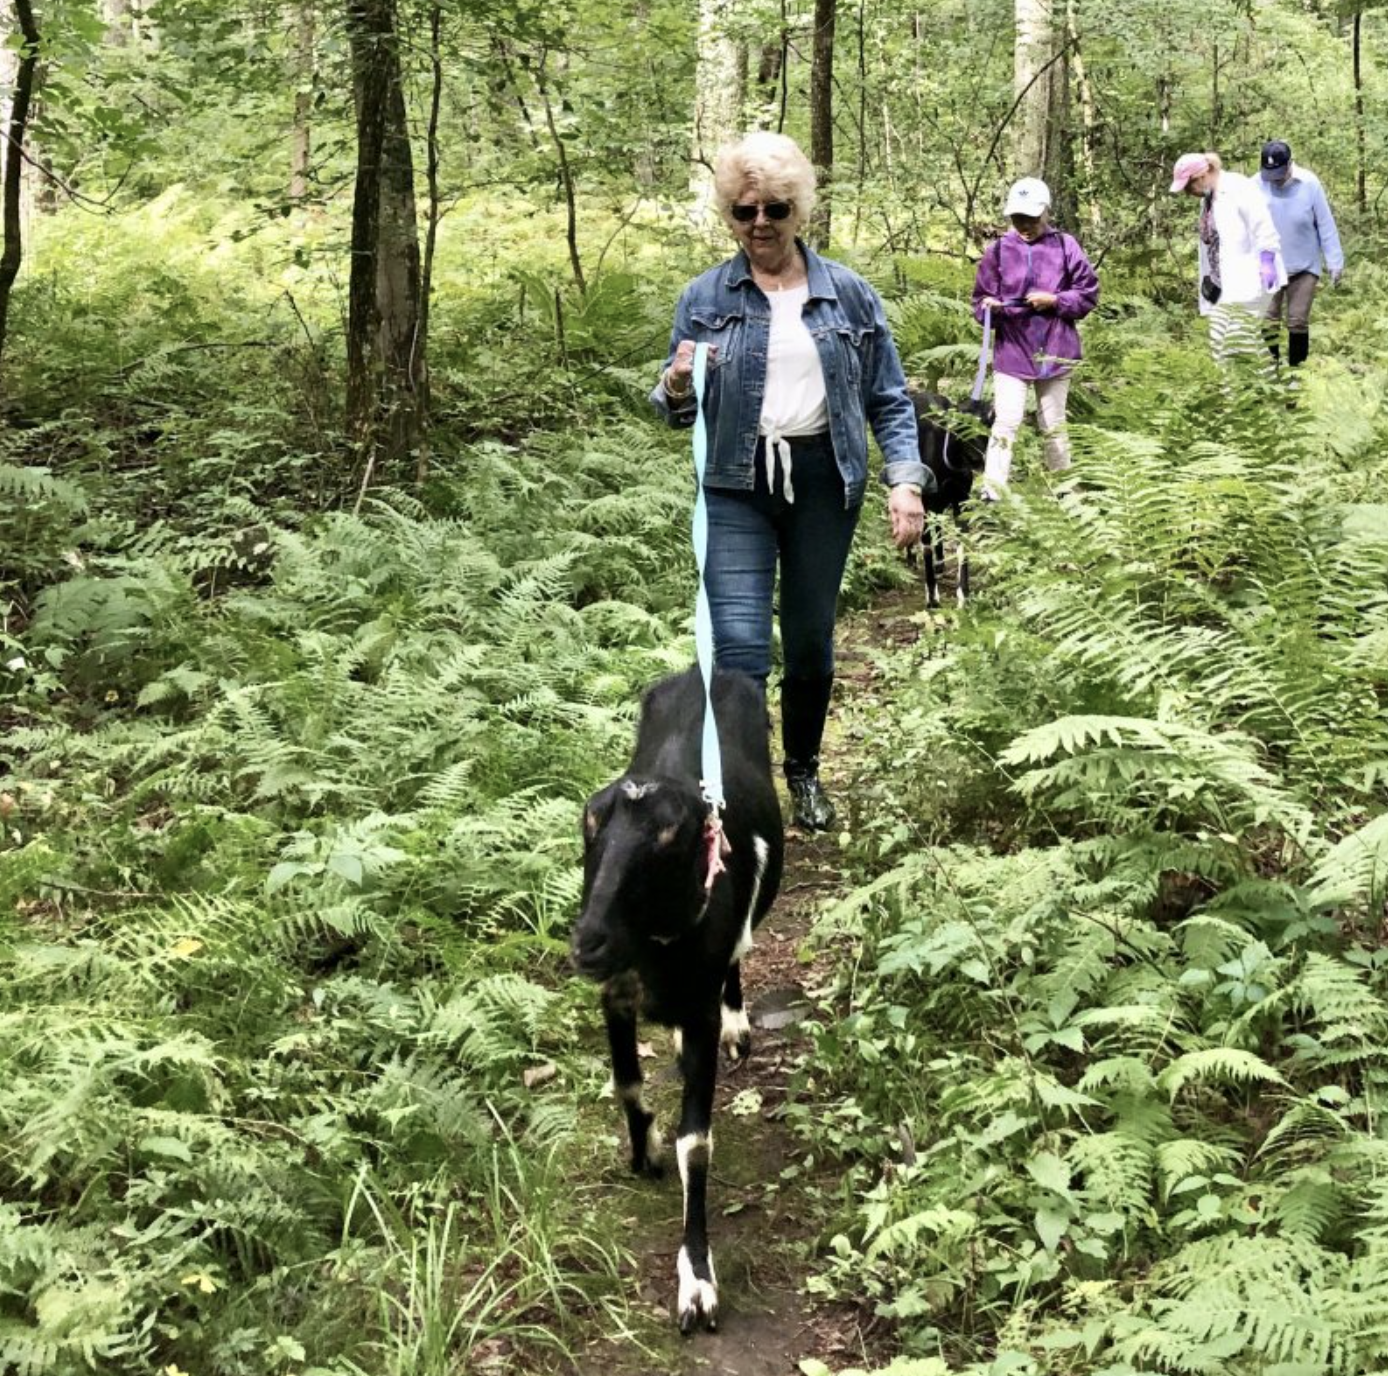 Hiking with Goats at Chestnut Hill Farm